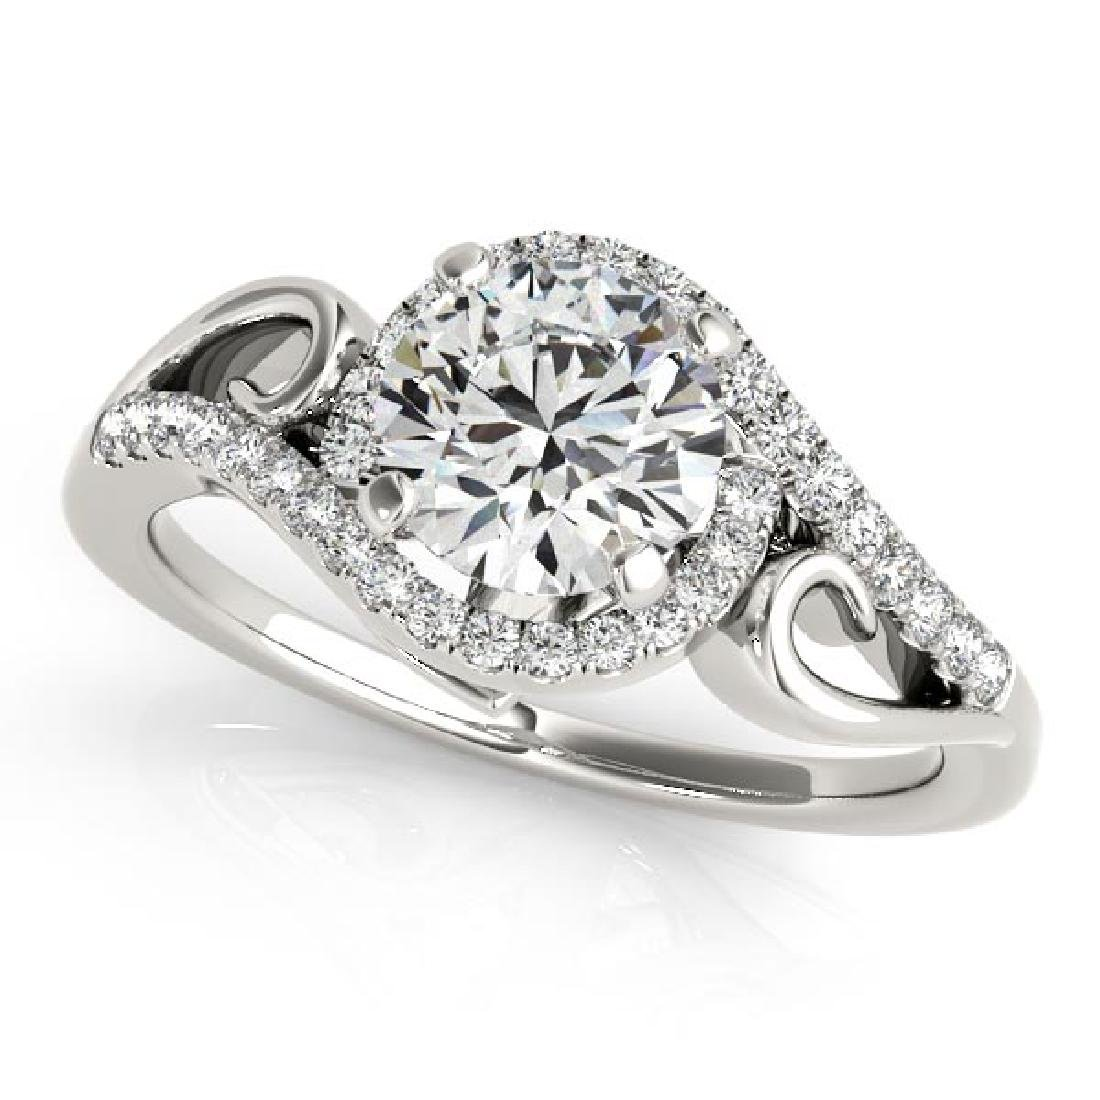 CERTIFIED 14K WHITE GOLD 1.00 CT G-H/VS-SI1 DIAMOND HAL